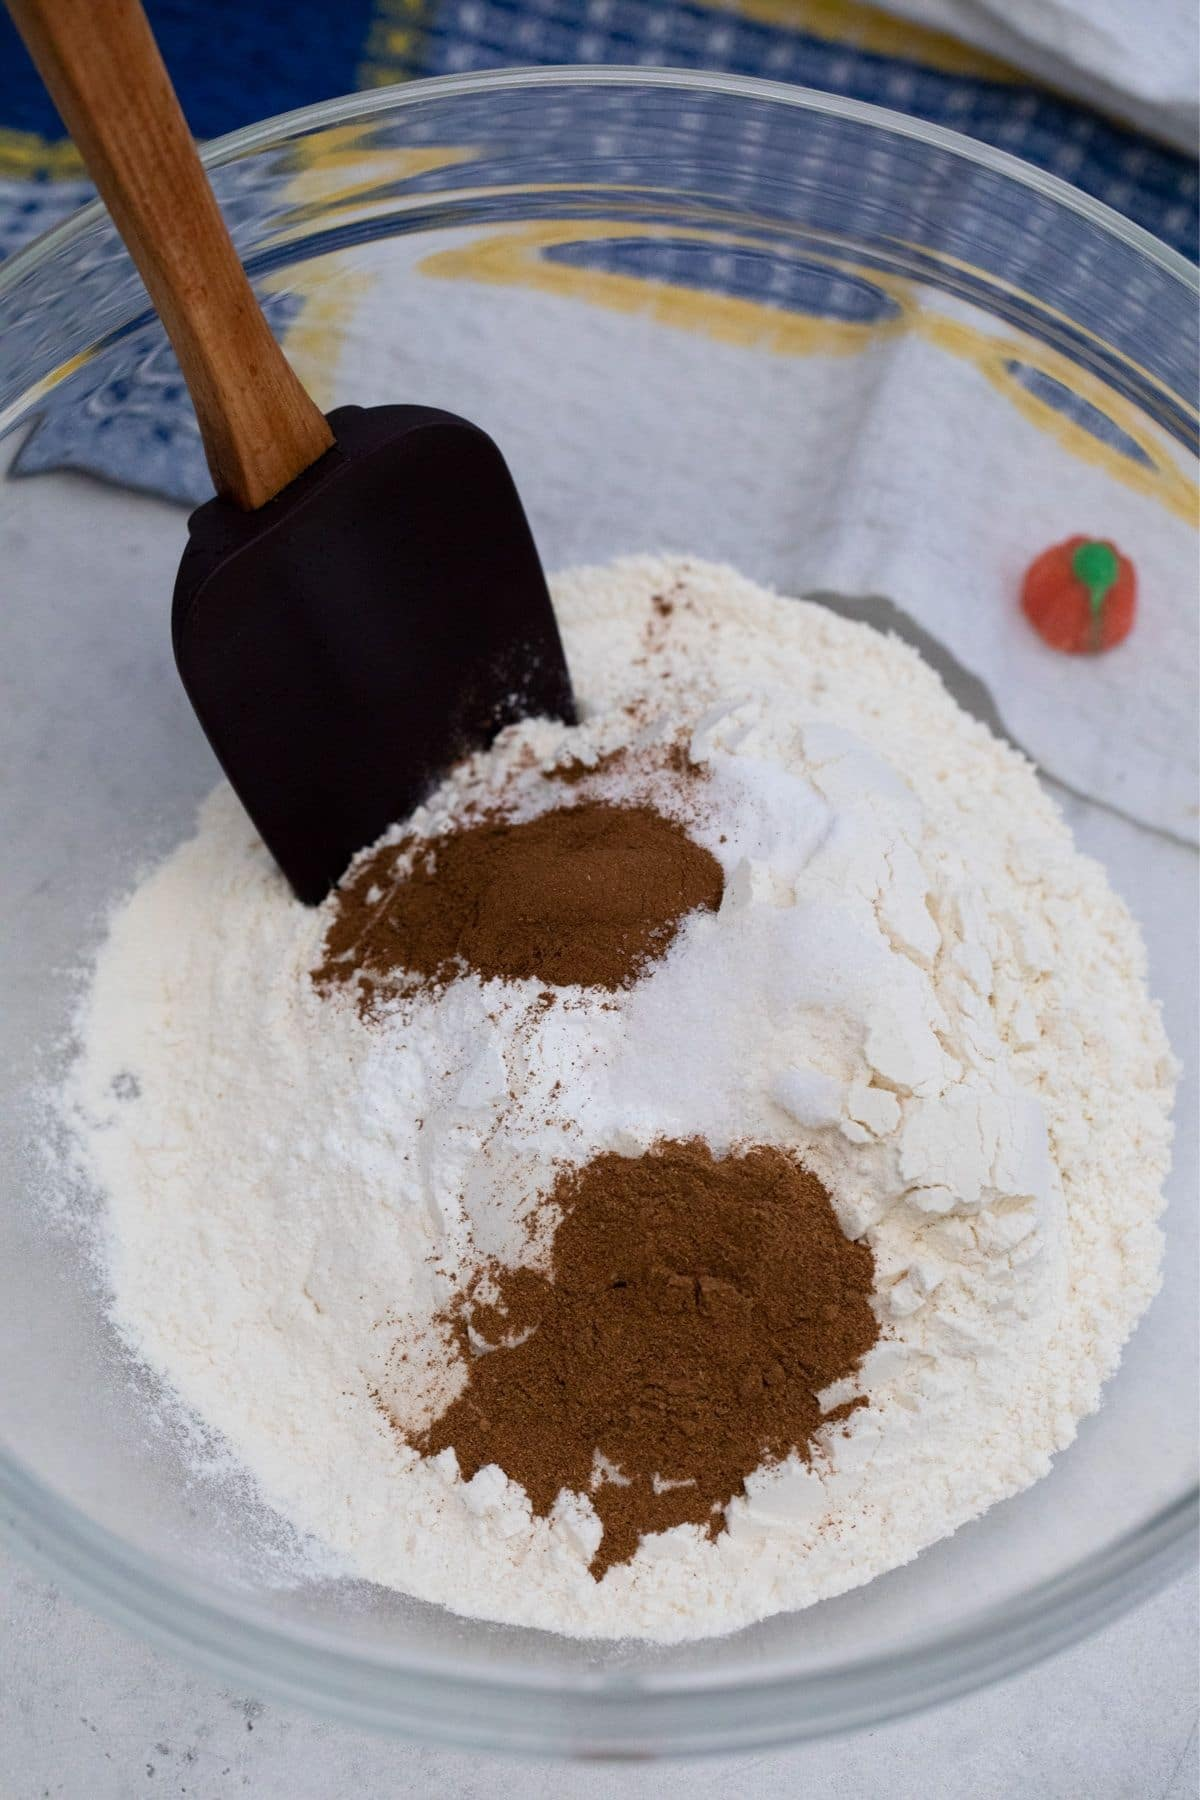 Black spatula in flour and spices in large glass bowl